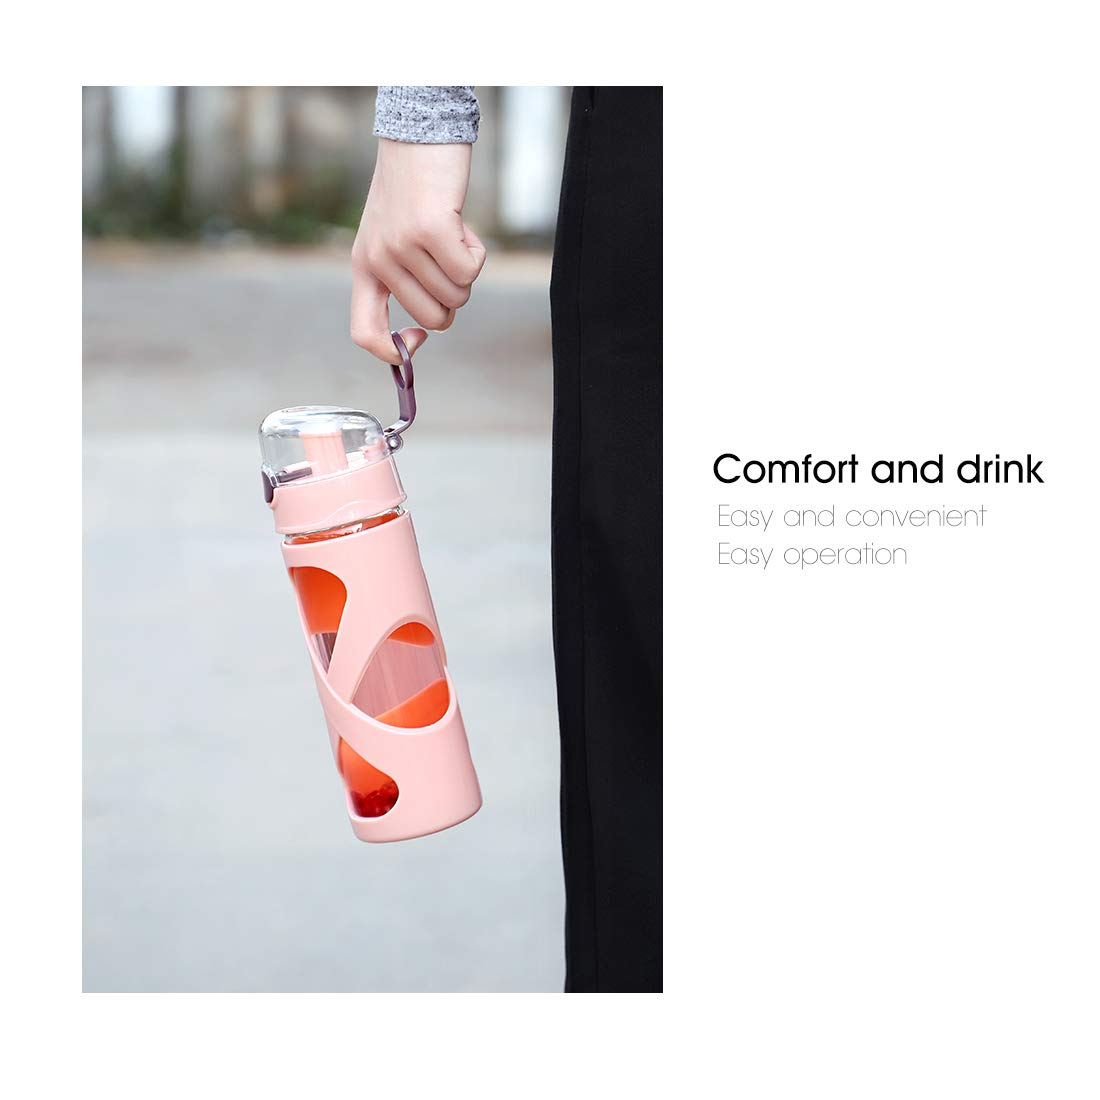 Sport Gym Leak Proof Sport Water Bottle with Flip Top 500ml Travel Water Container for School Kids Girls Boys BEYONDA Glass Water Bottle 16oz Ideal for Travel